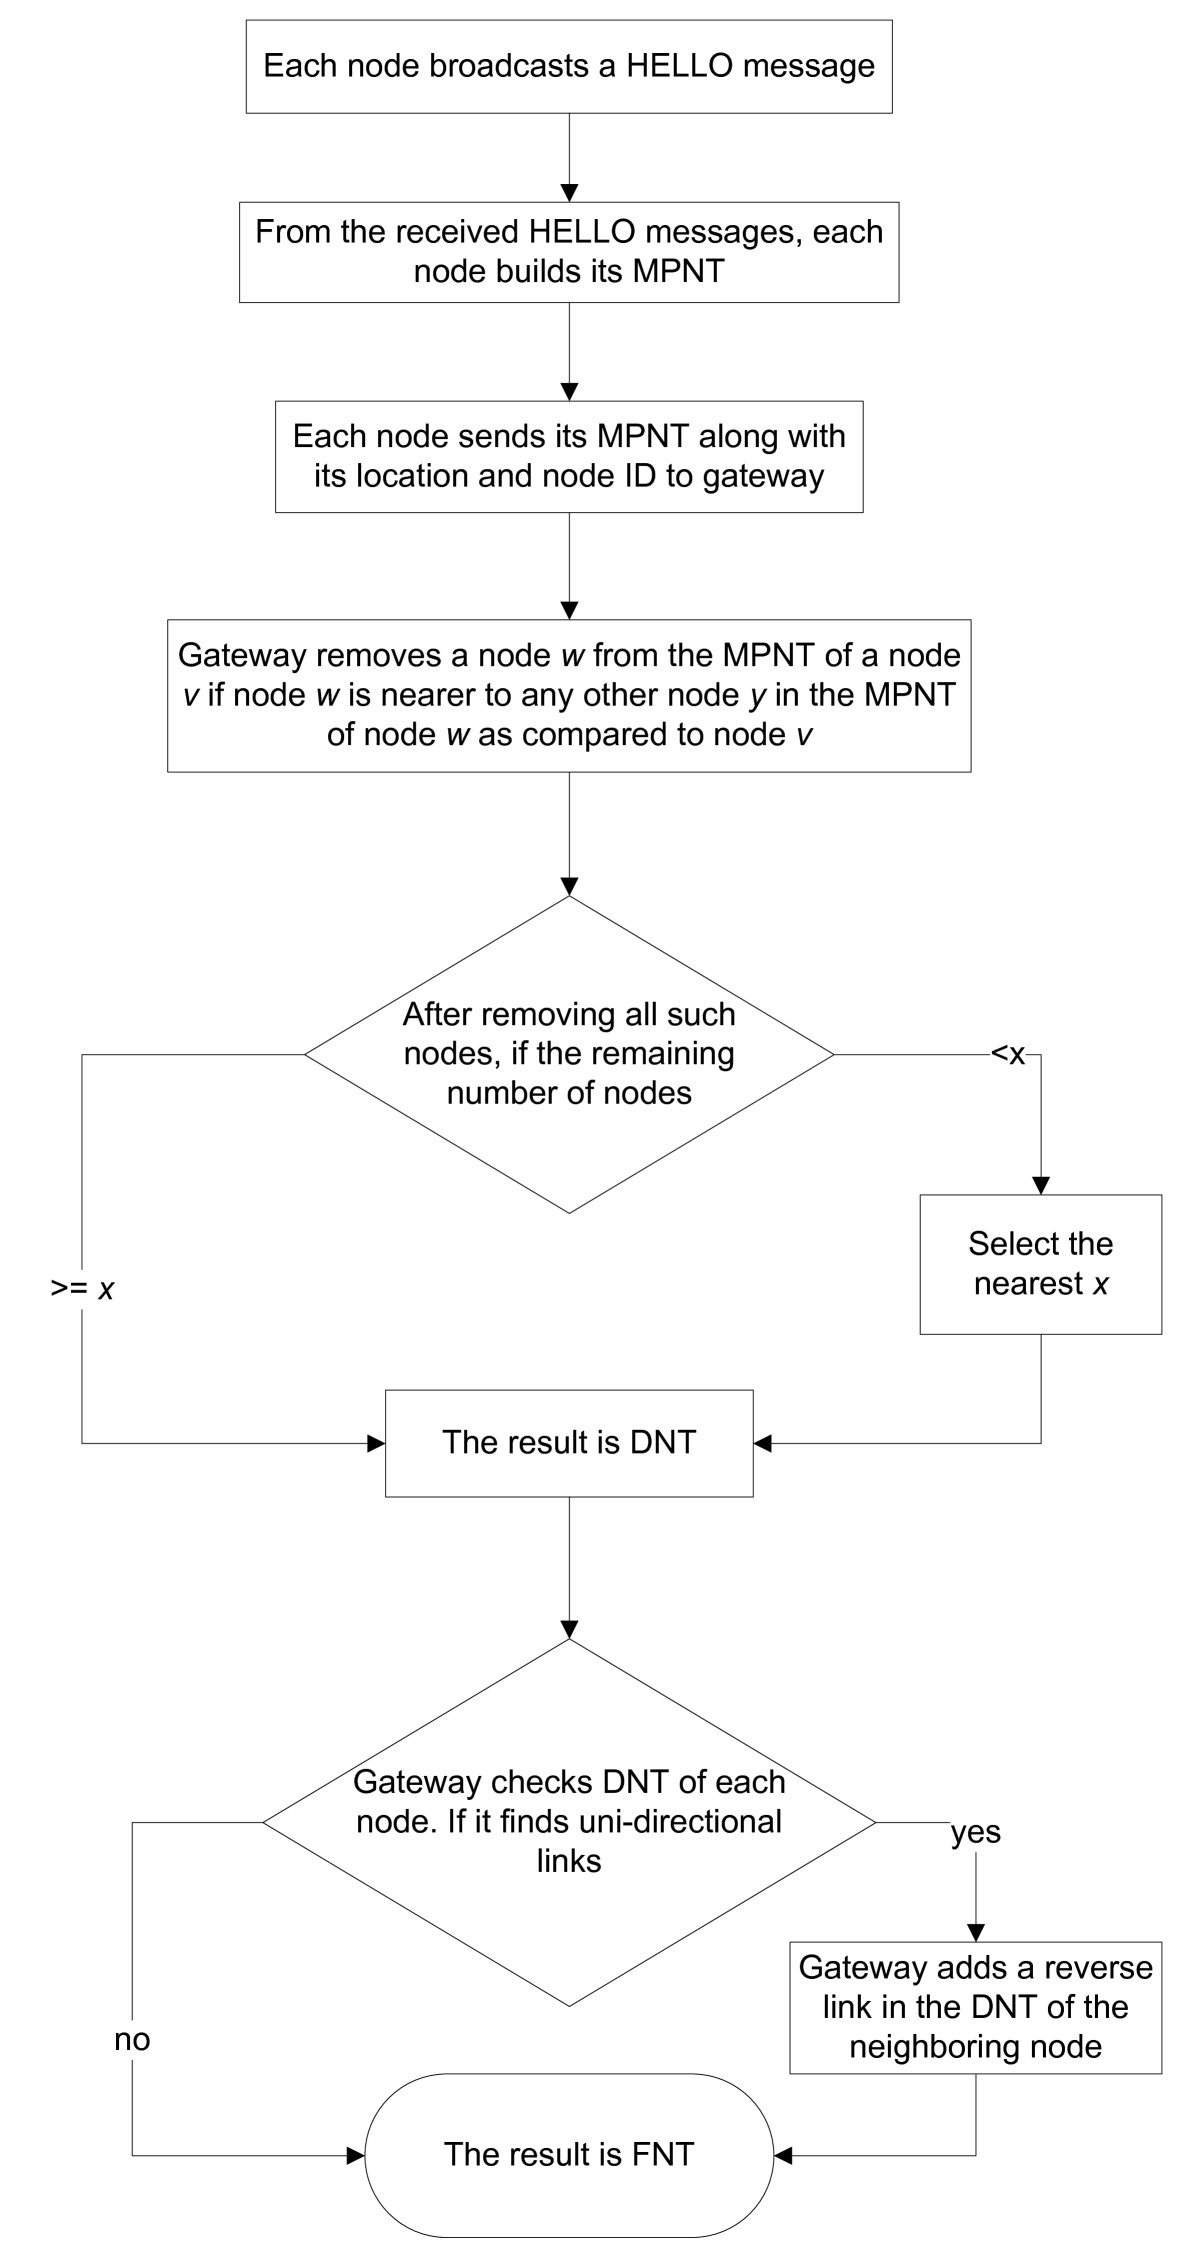 http://static-content.springer.com/image/art%3A10.1186%2F1687-1499-2012-155/MediaObjects/13638_2011_Article_354_Fig1_HTML.jpg